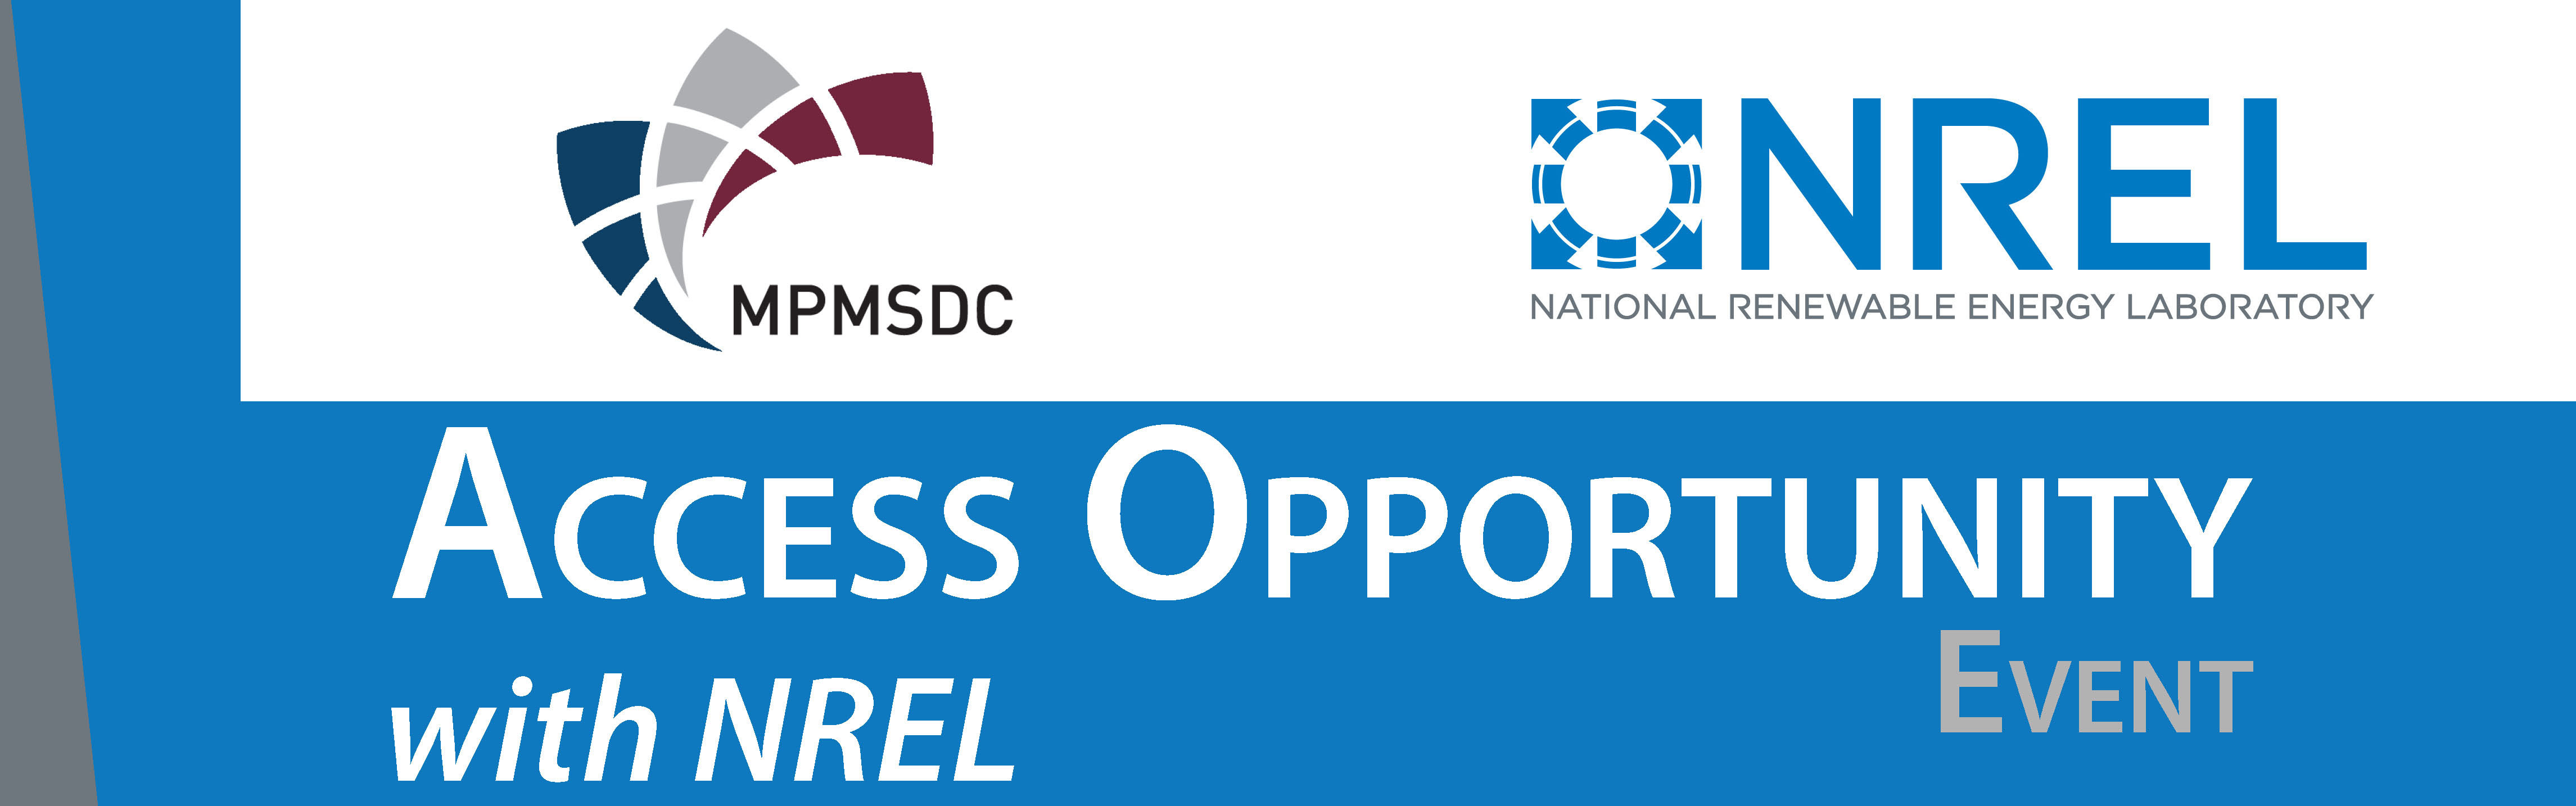 Access Opportunity with NREL – June 25, 2015